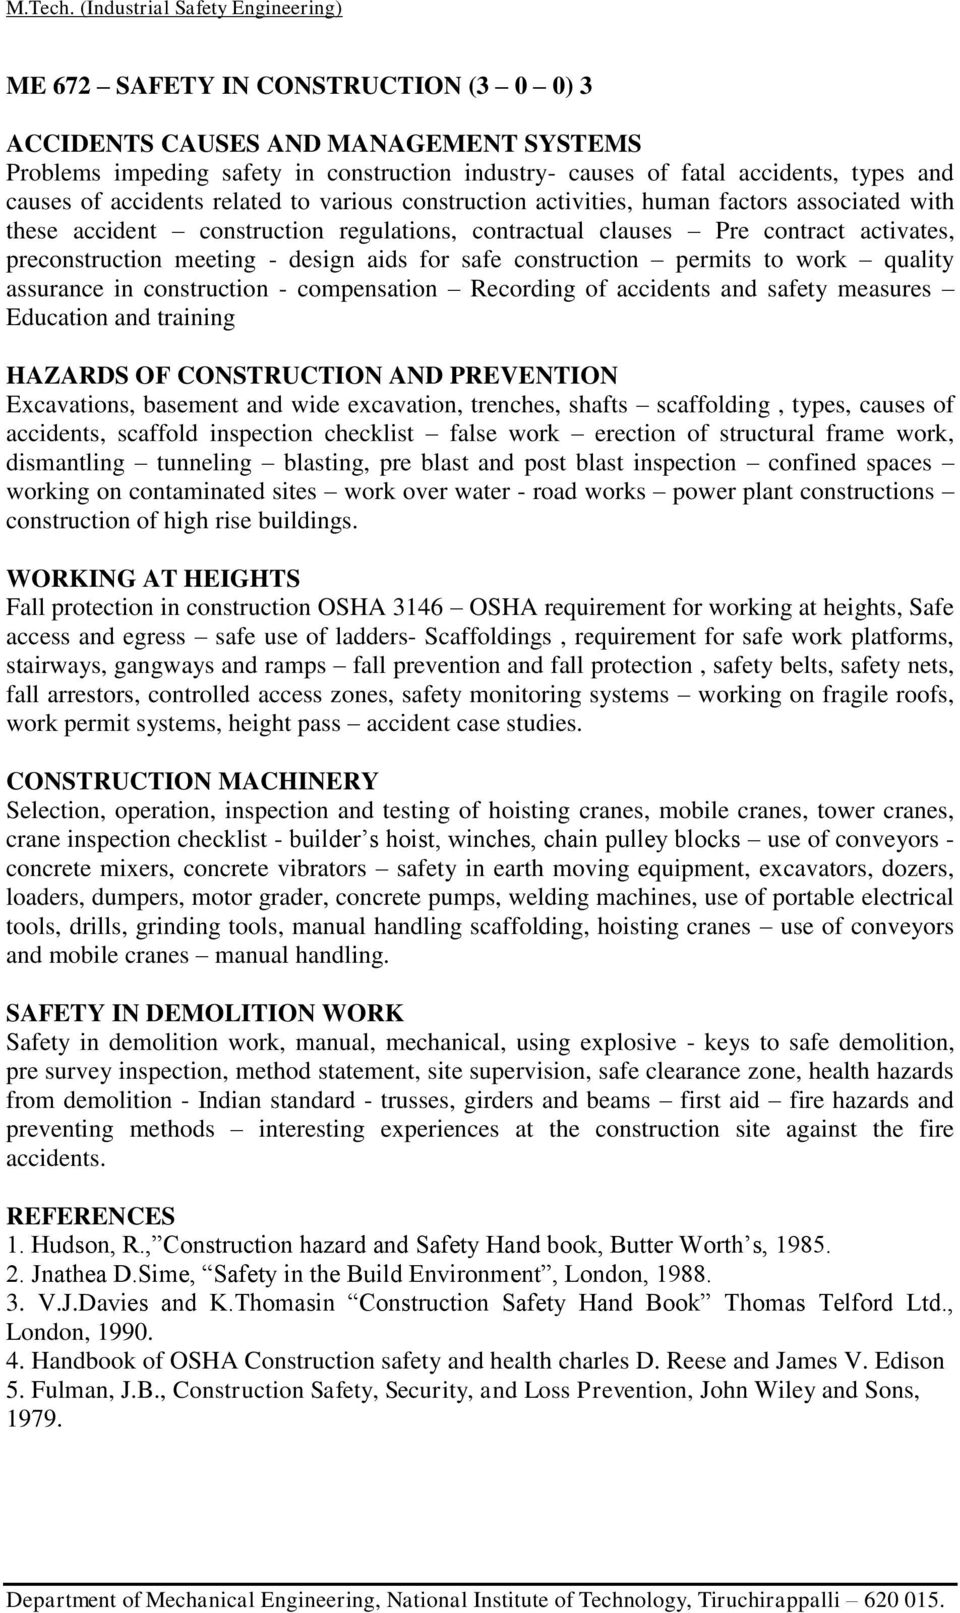 M  Tech  DEGREE INDUSTRIAL SAFETY ENGINEERING - PDF